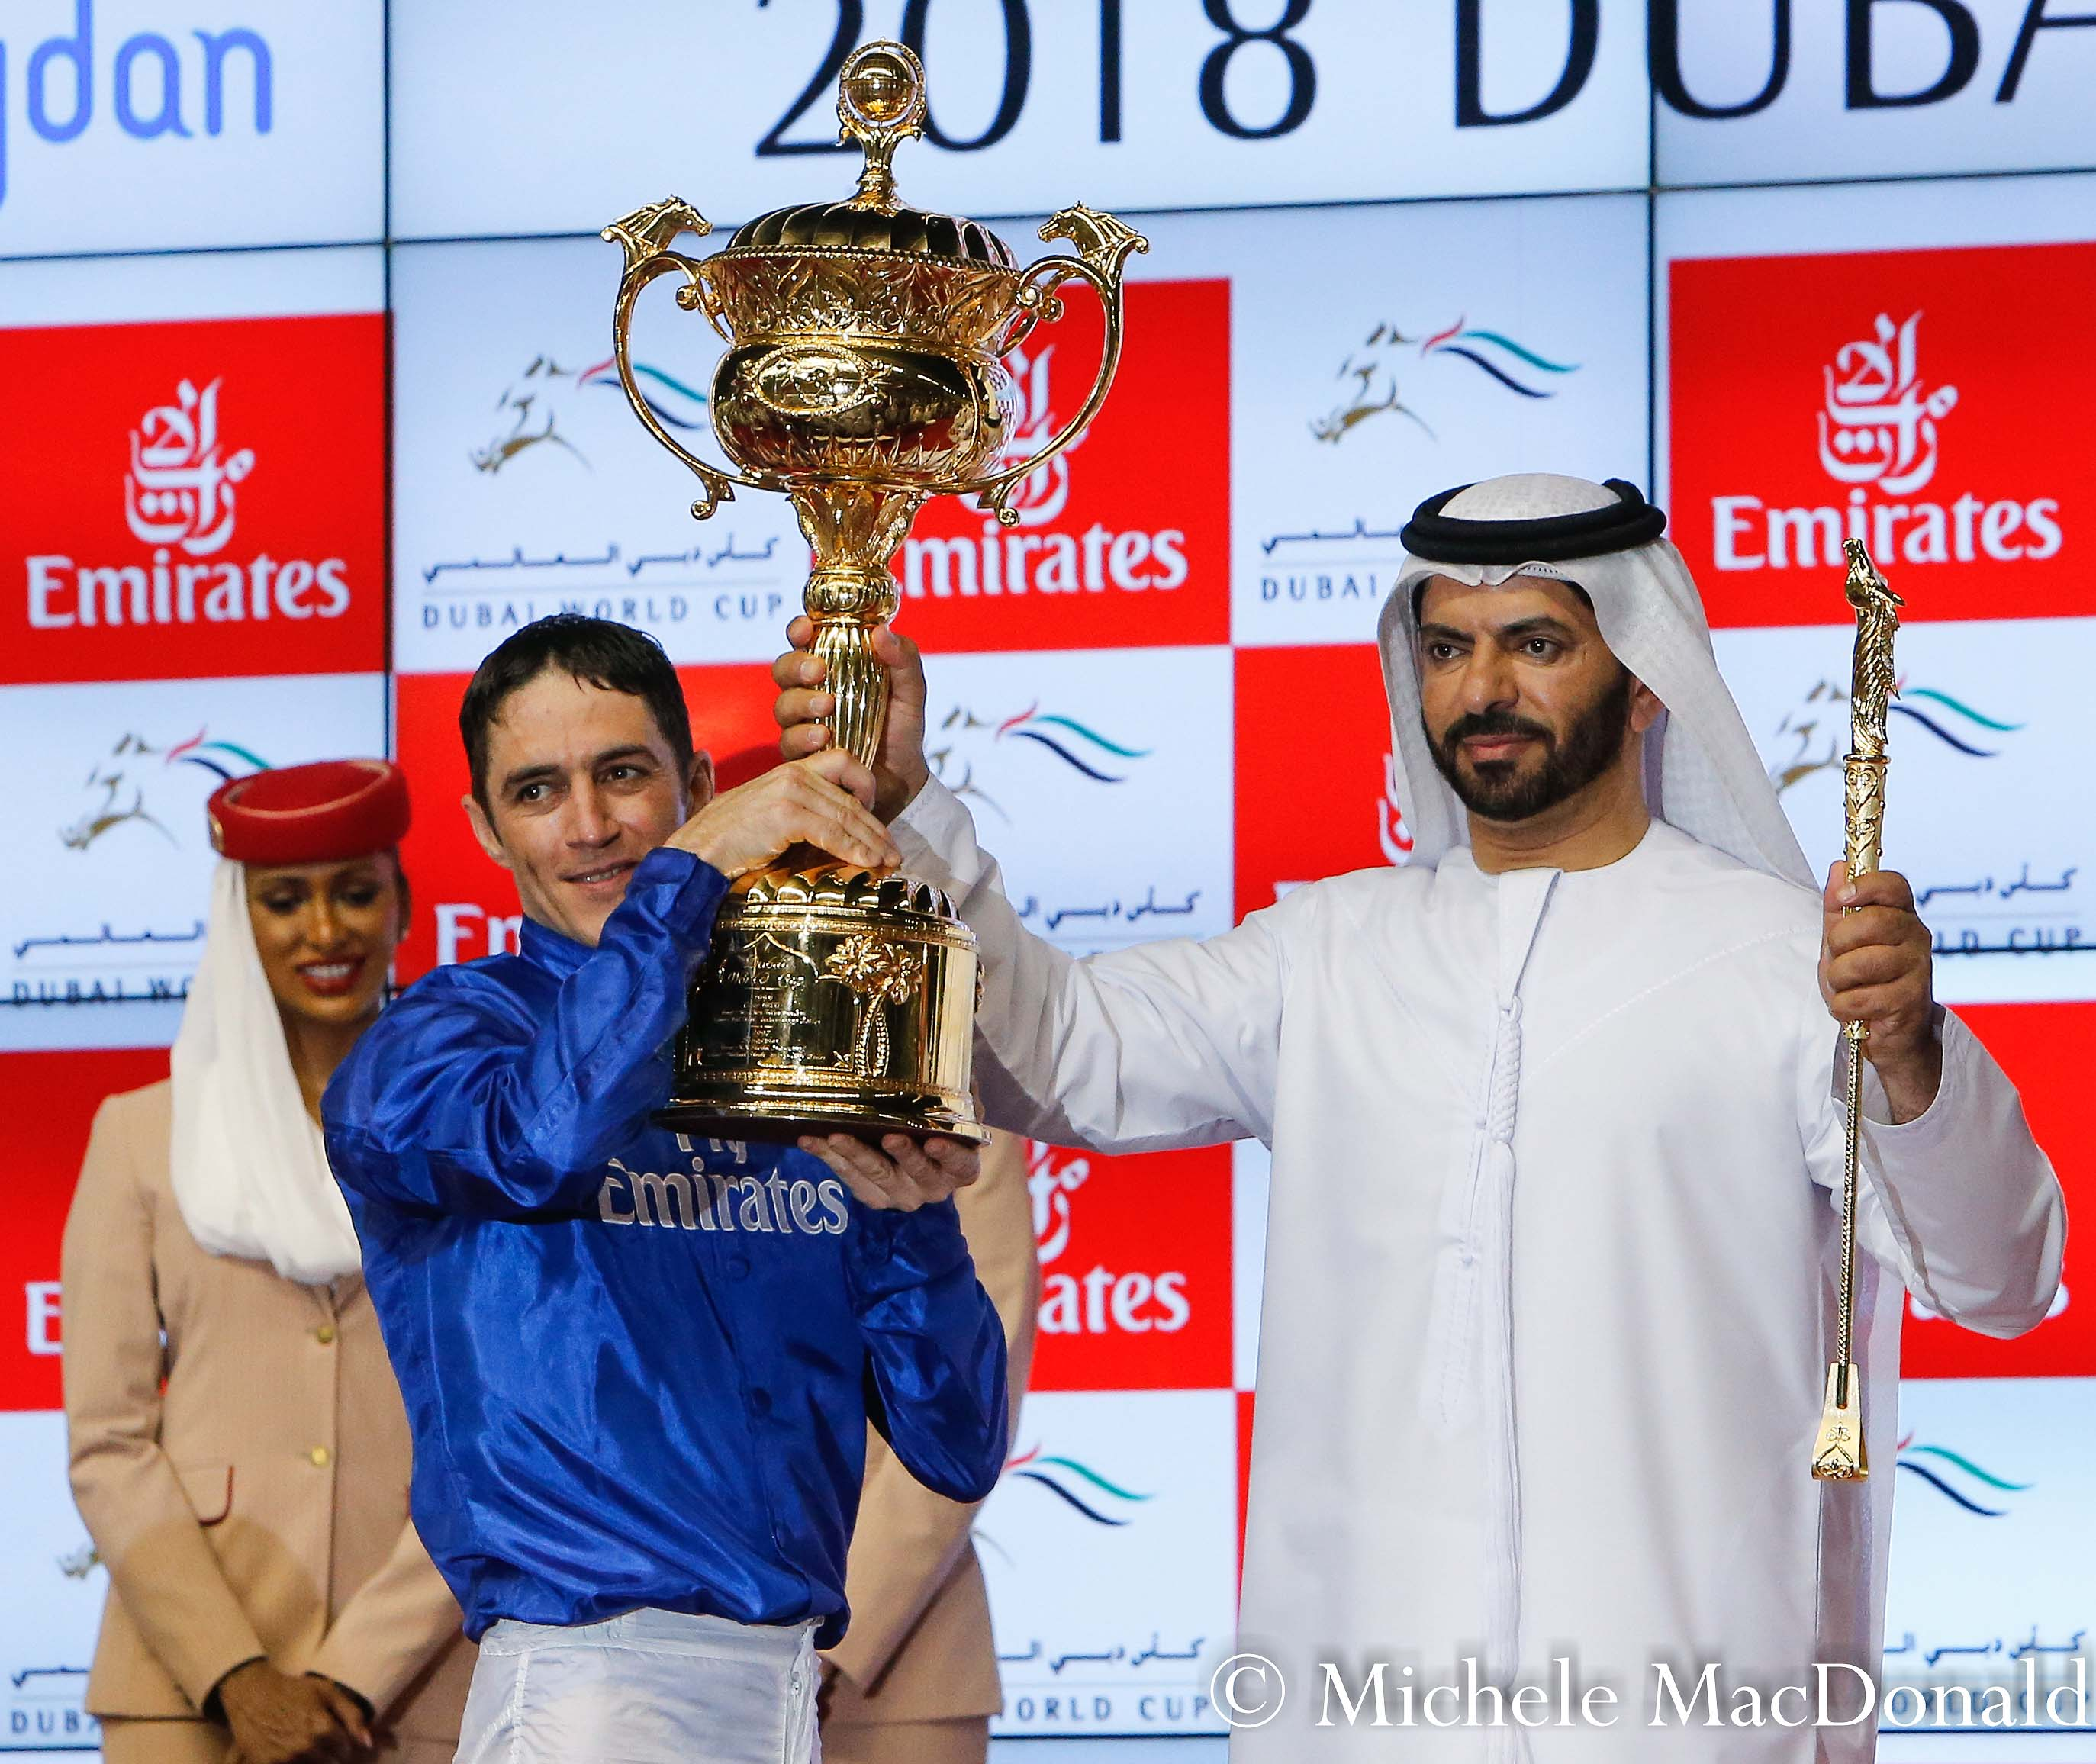 Christophe Soumillon and Saeed Bin Suroor with the Dubai World Cup trophy on Saturday. They will be hoping to get their hands on another prestigious trophy at Churchill Downs in November. Photo: Michele MacDonald